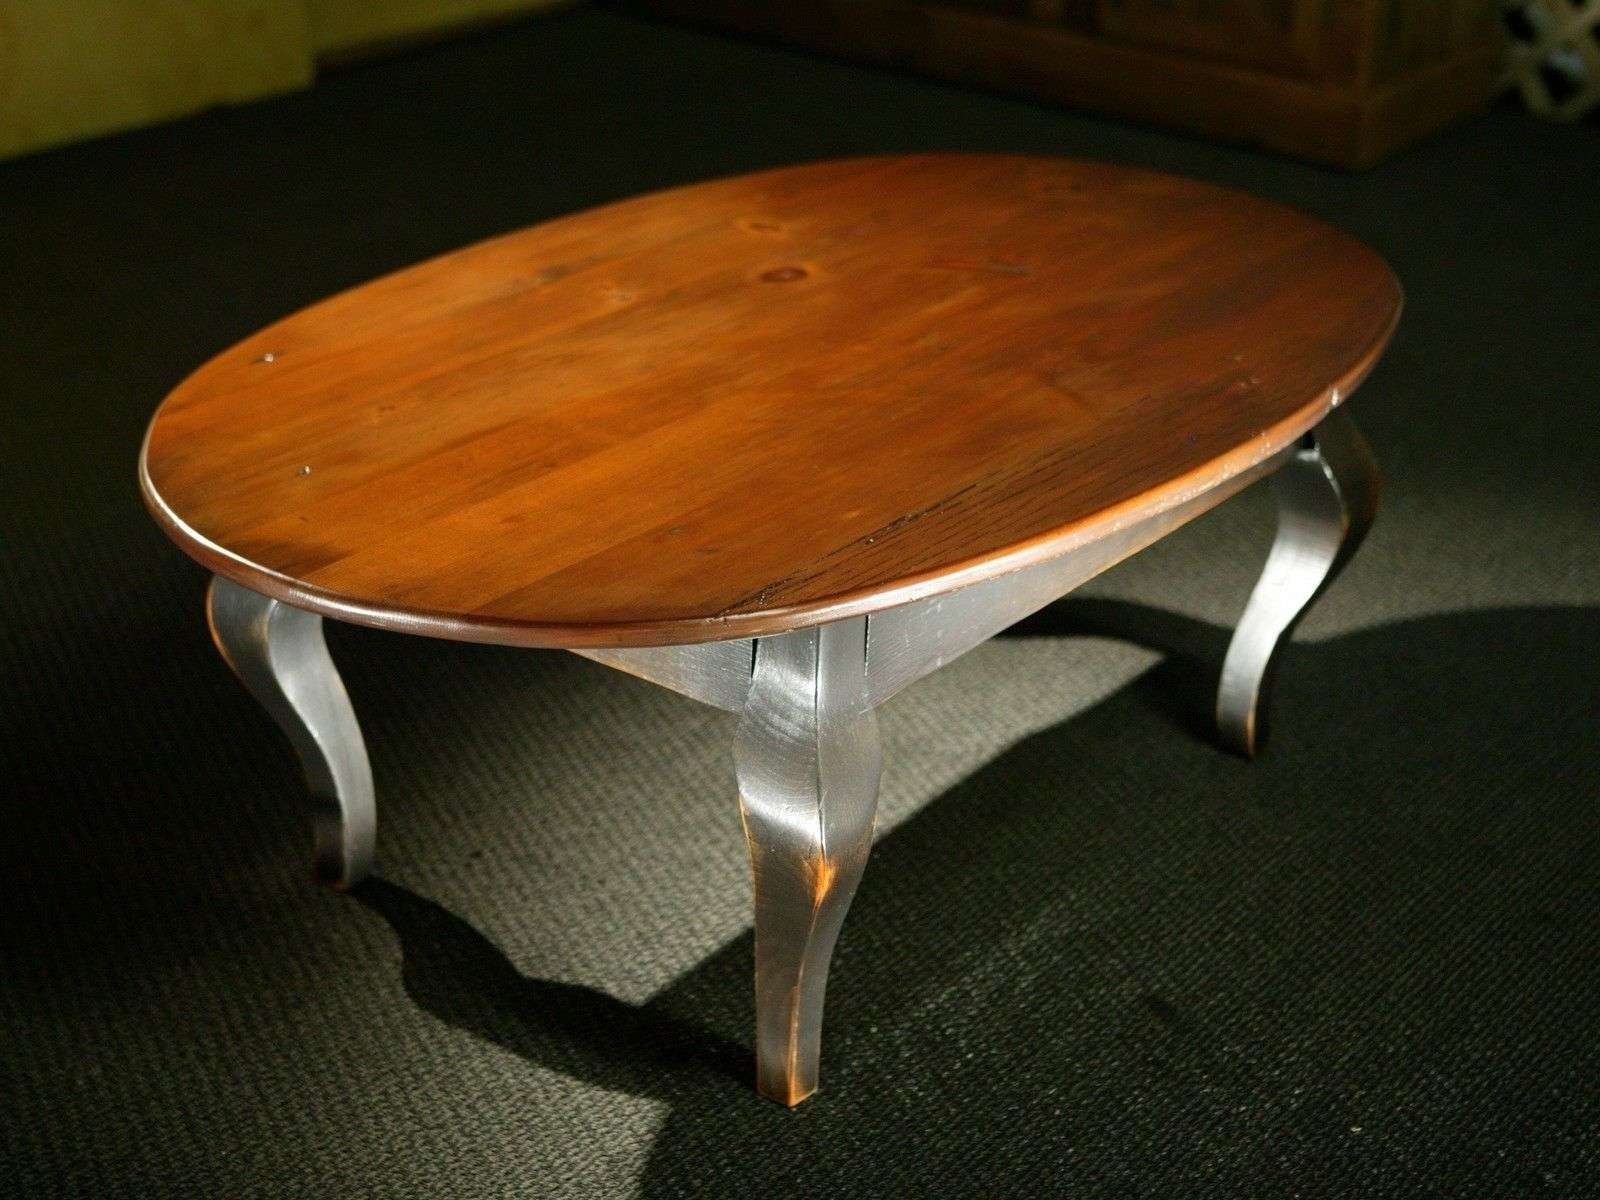 Hand Crafted Oval Wood Coffee Table With Black French Legs Inside Popular Oval Wood Coffee Tables (View 7 of 20)